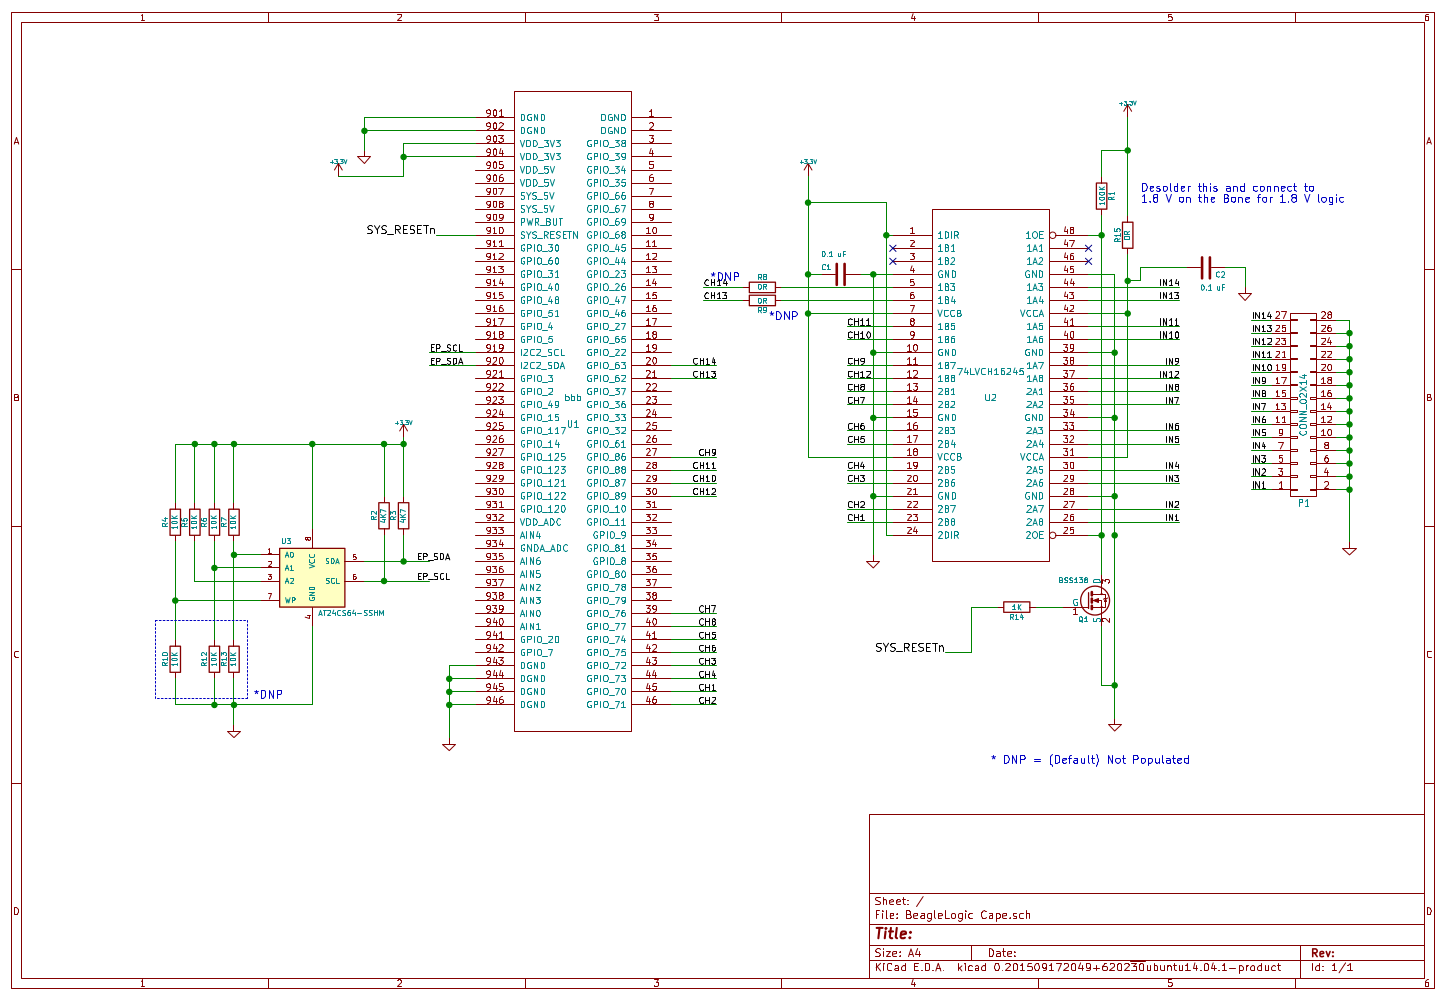 BeagleLogic Cape Schematics & Explanation | Details | aday.io on bluetooth schematic, xbee schematic, gps schematic, apple schematic, solar schematic, breadboard schematic, quadcopter schematic, lcd schematic, usb schematic, wireless schematic, msp430 schematic, arduino schematic, geiger counter schematic, flux capacitor schematic, electronics schematic,